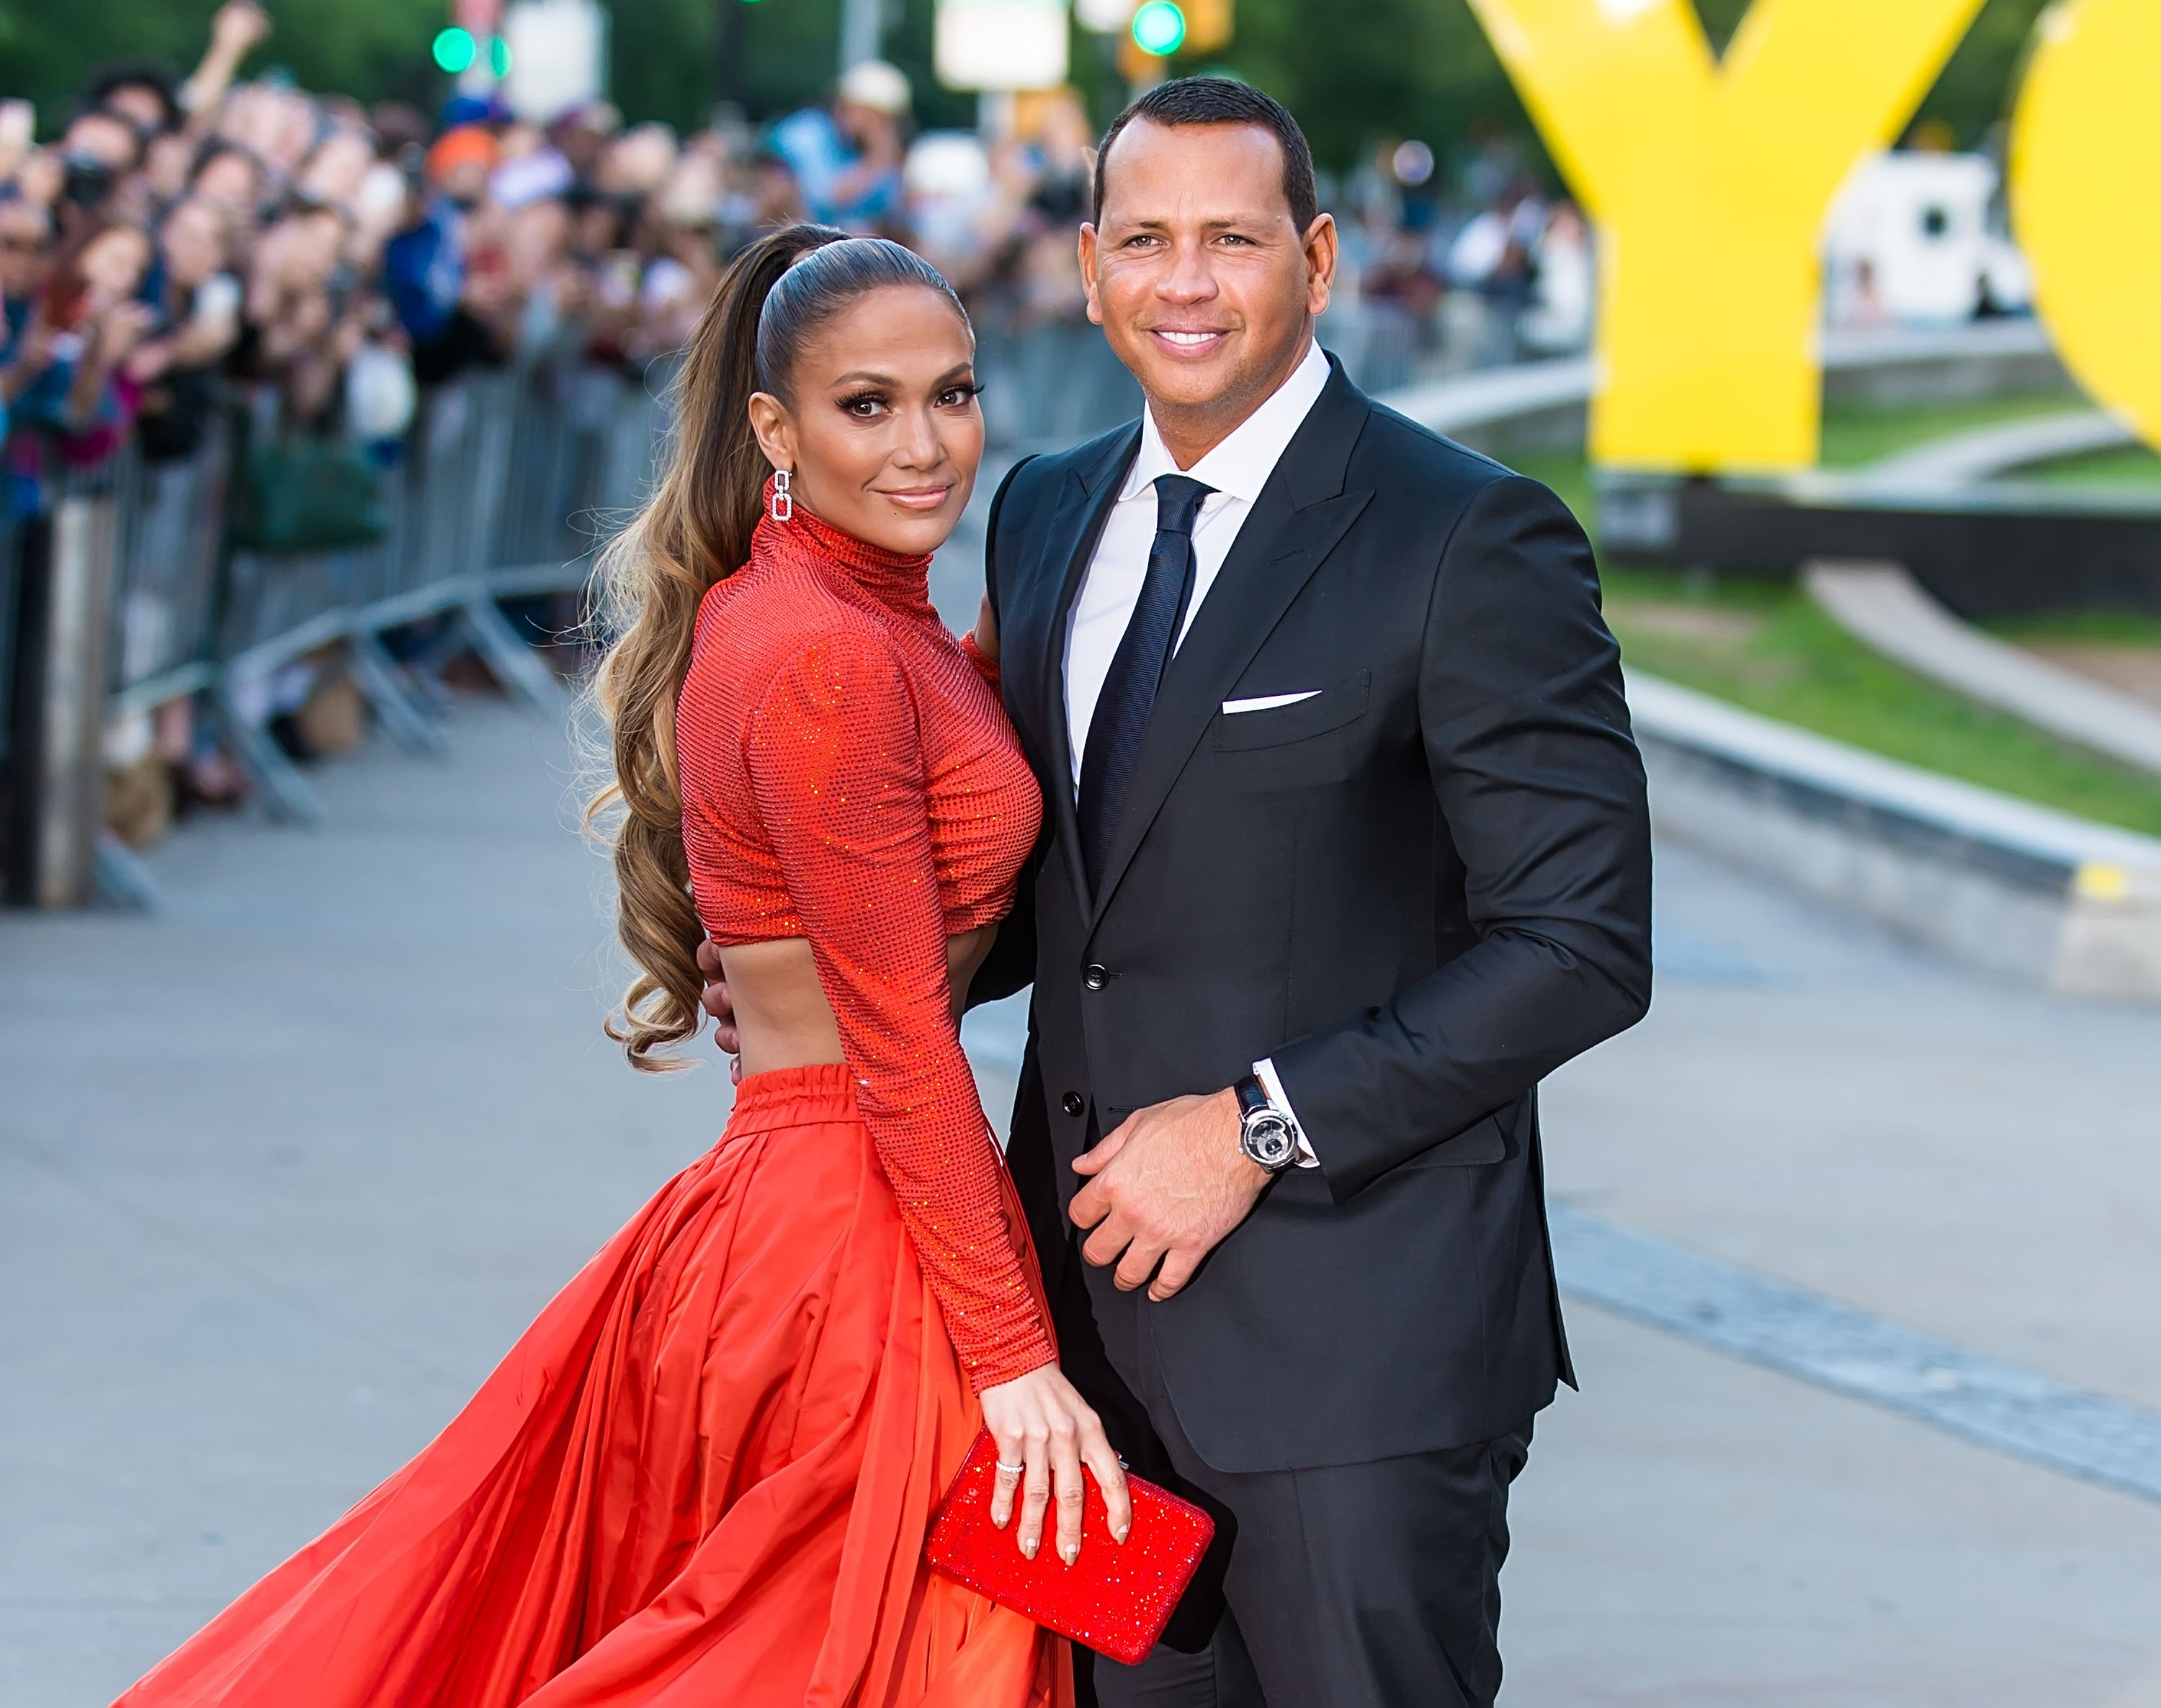 Alex Rodriguez and Jennifer Lopez at the CFDA Fashion Awards on June 3, 2019 in New York.    Photo: Getty Images